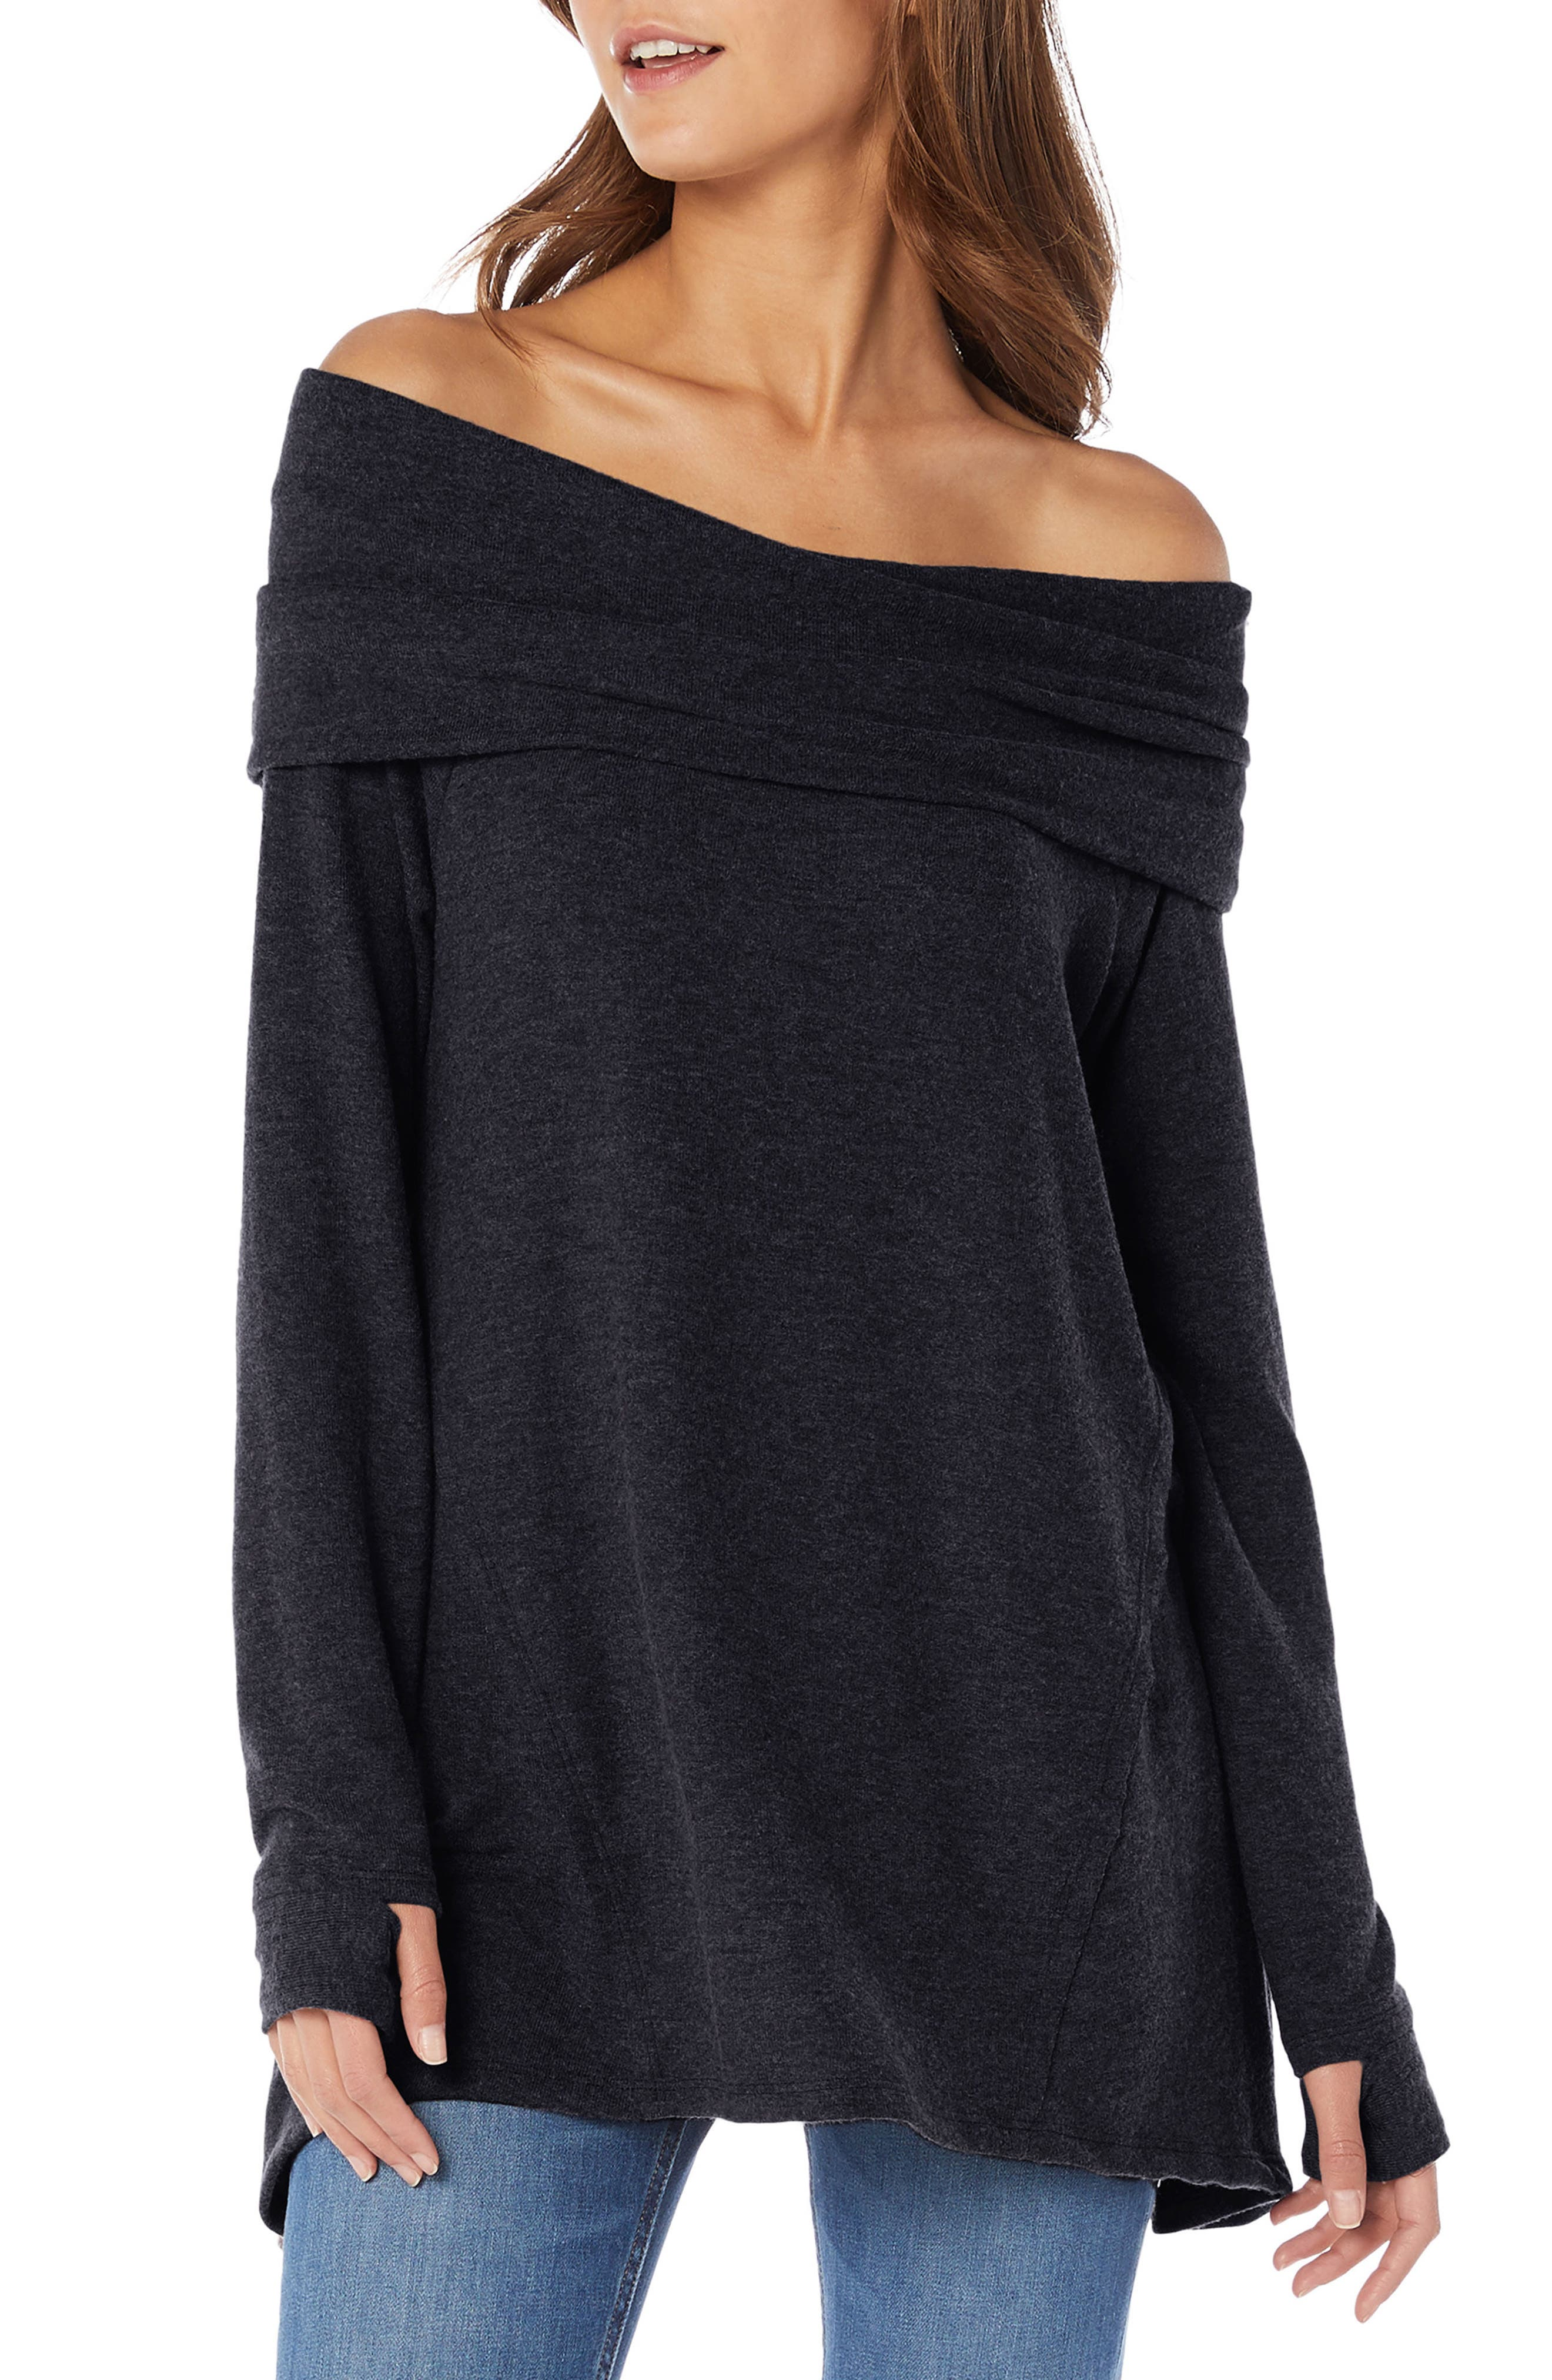 Madison Brushed Convertible Swing Tunic Top,                             Main thumbnail 1, color,                             BLACK